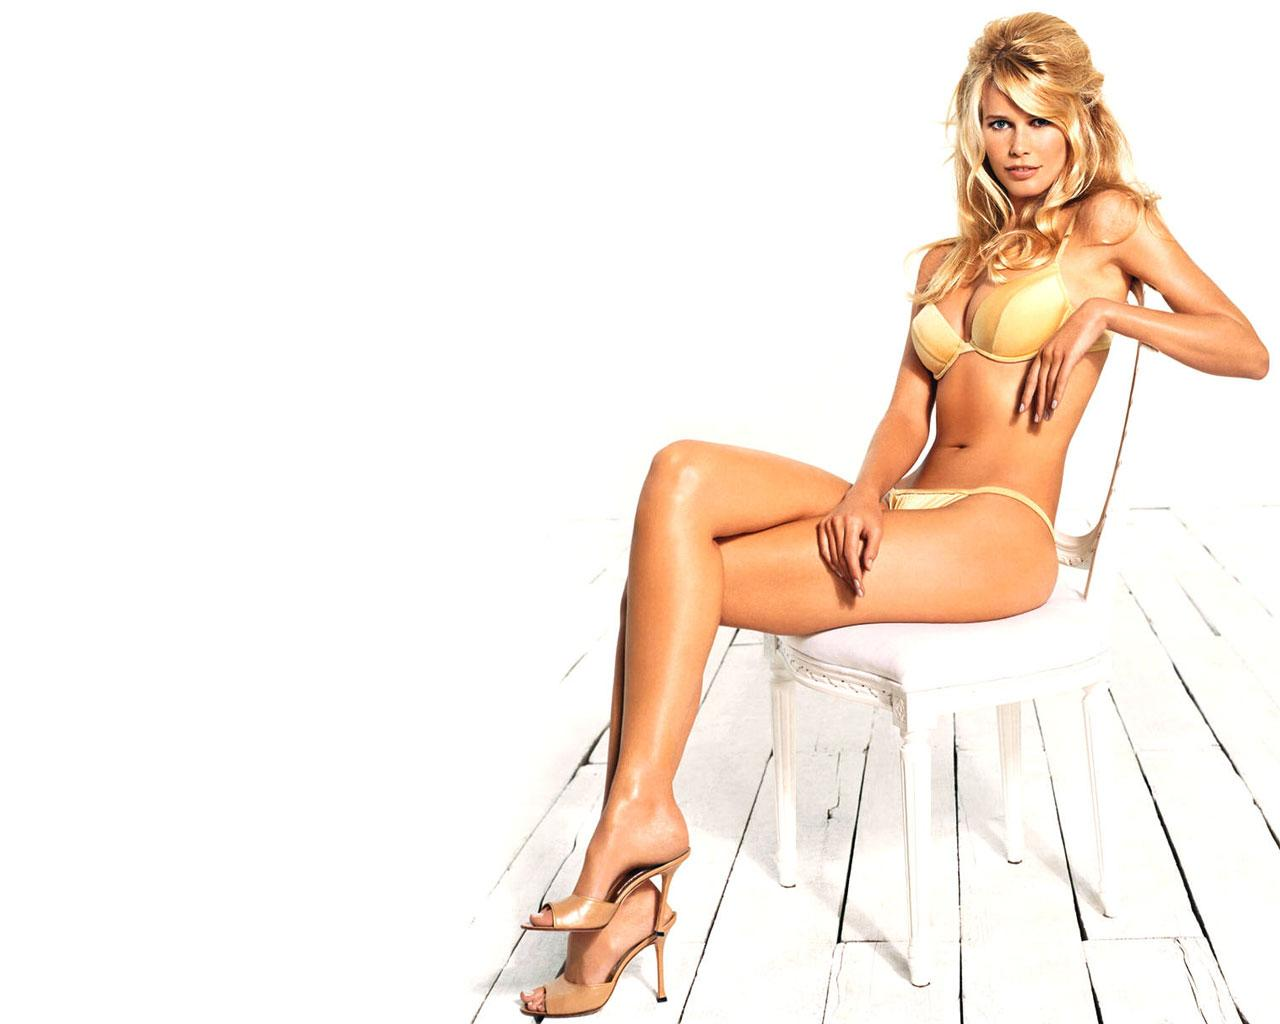 Best Women Best Looking Woman Claudia Schiffer 1280x1024